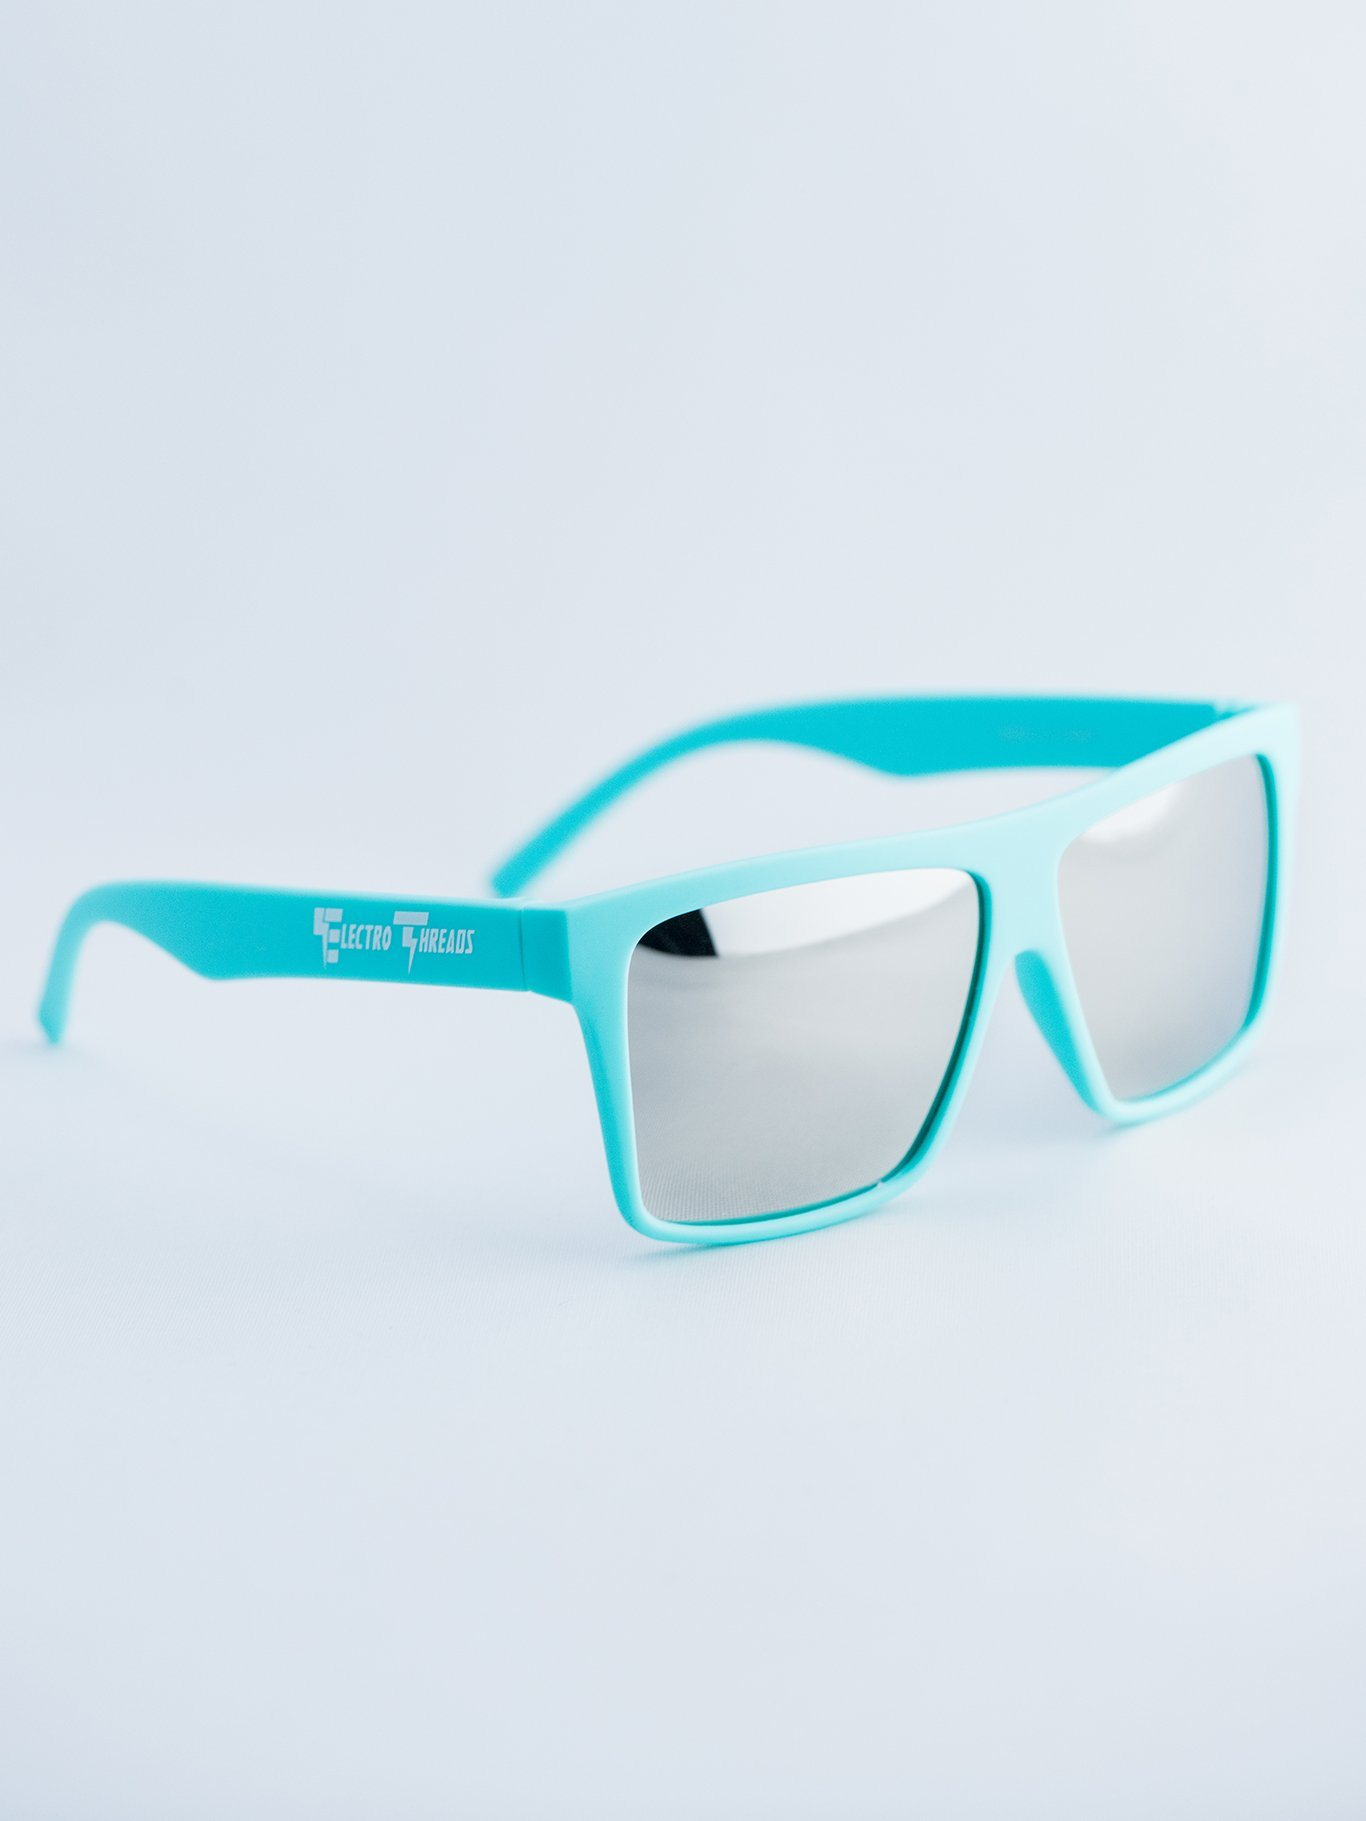 Mint – Polarized Chrome Lensed Sunglasses Glasses Electro Threads